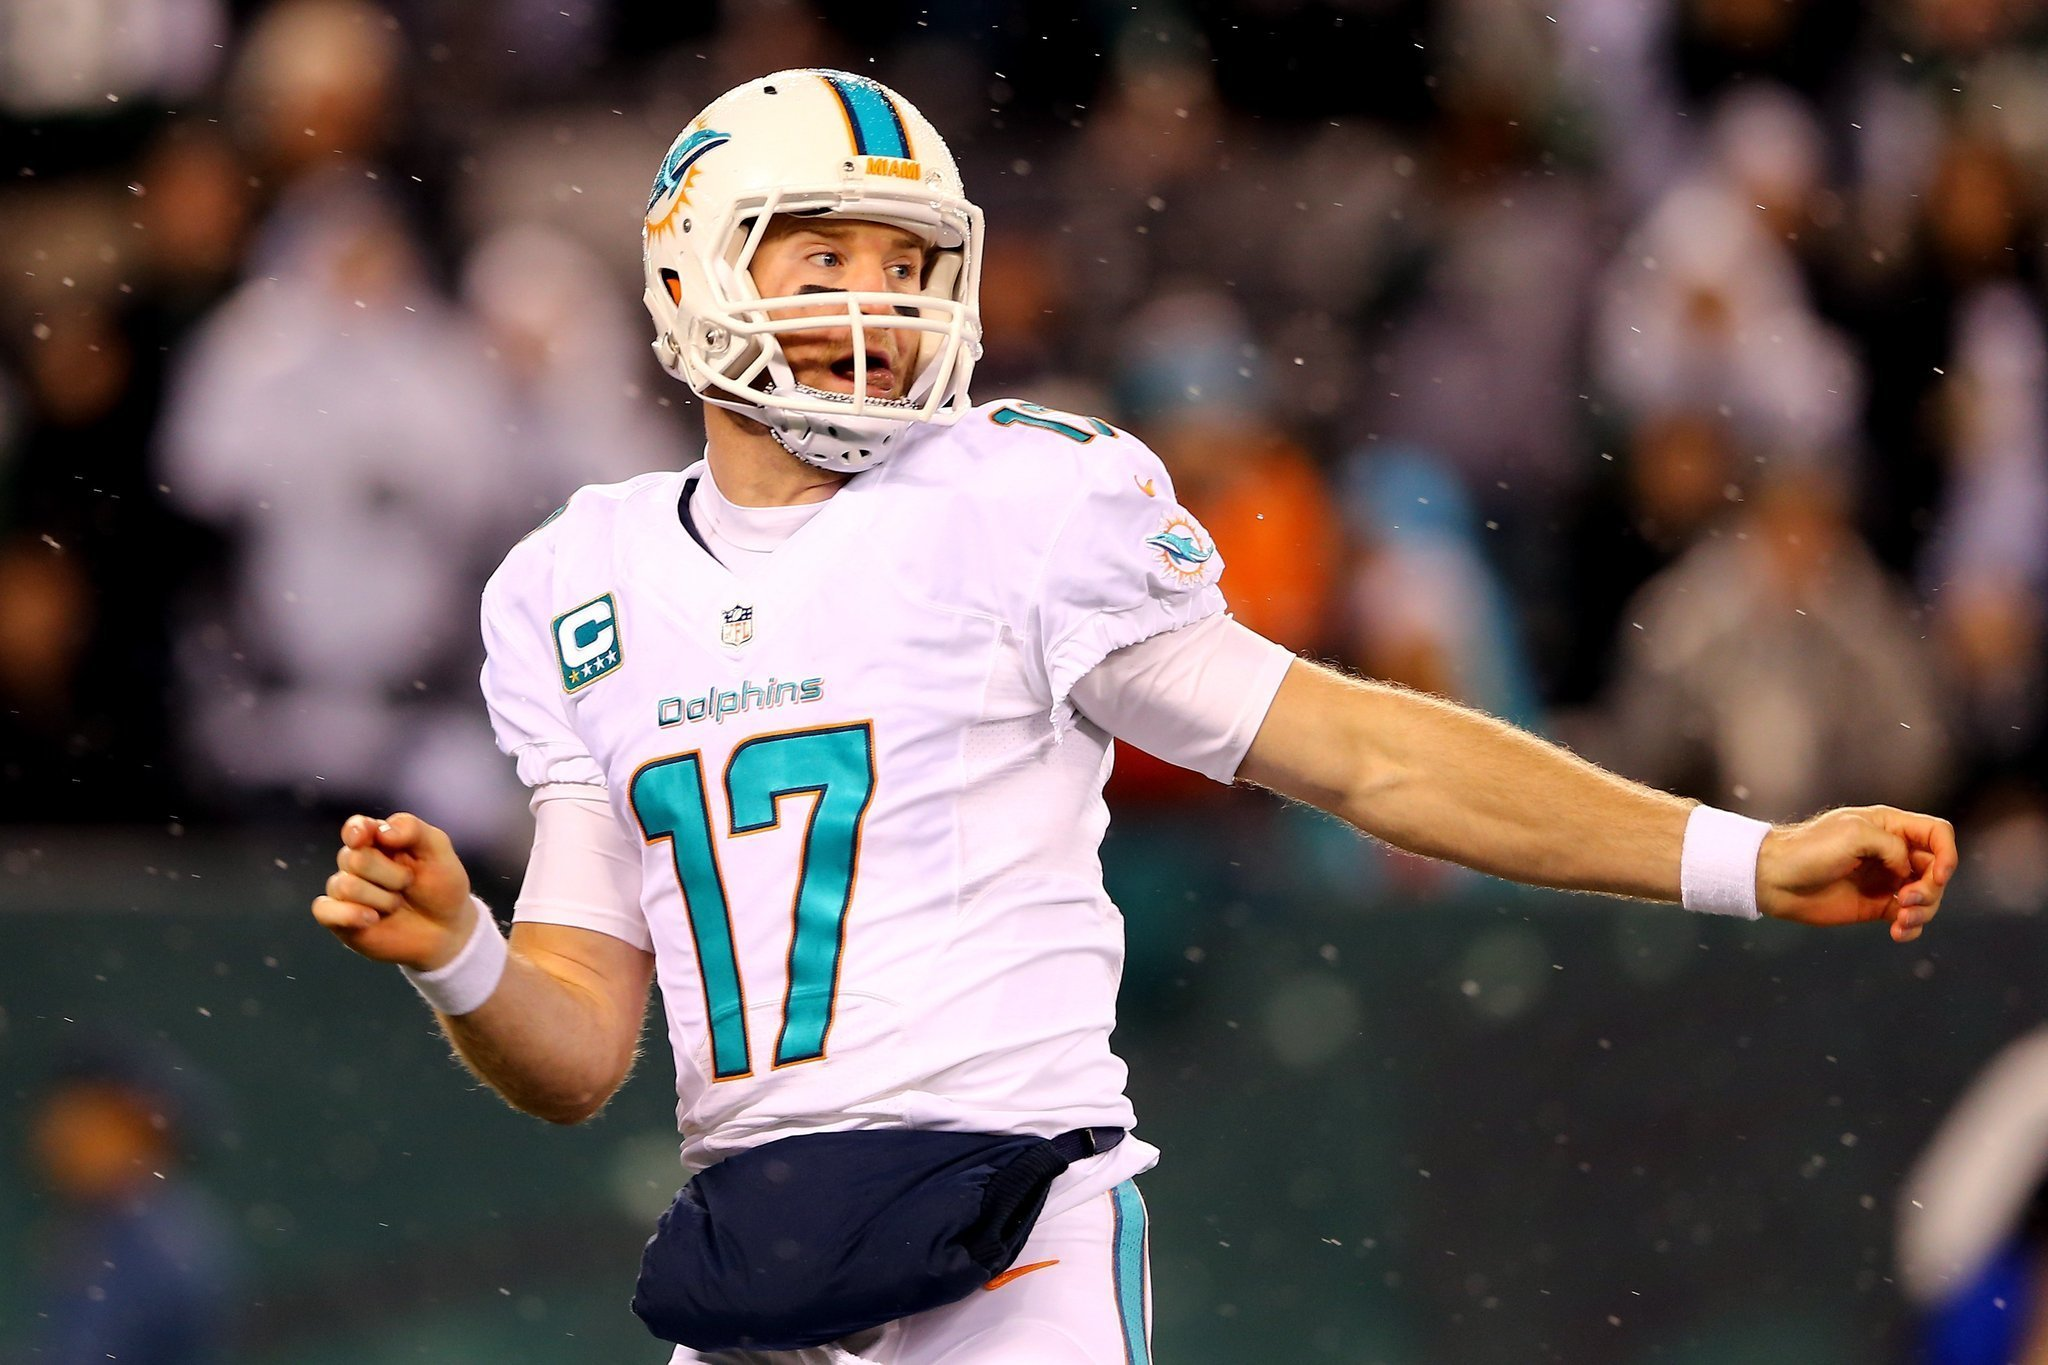 Fl-sp-dolphins-tannehill-20170223